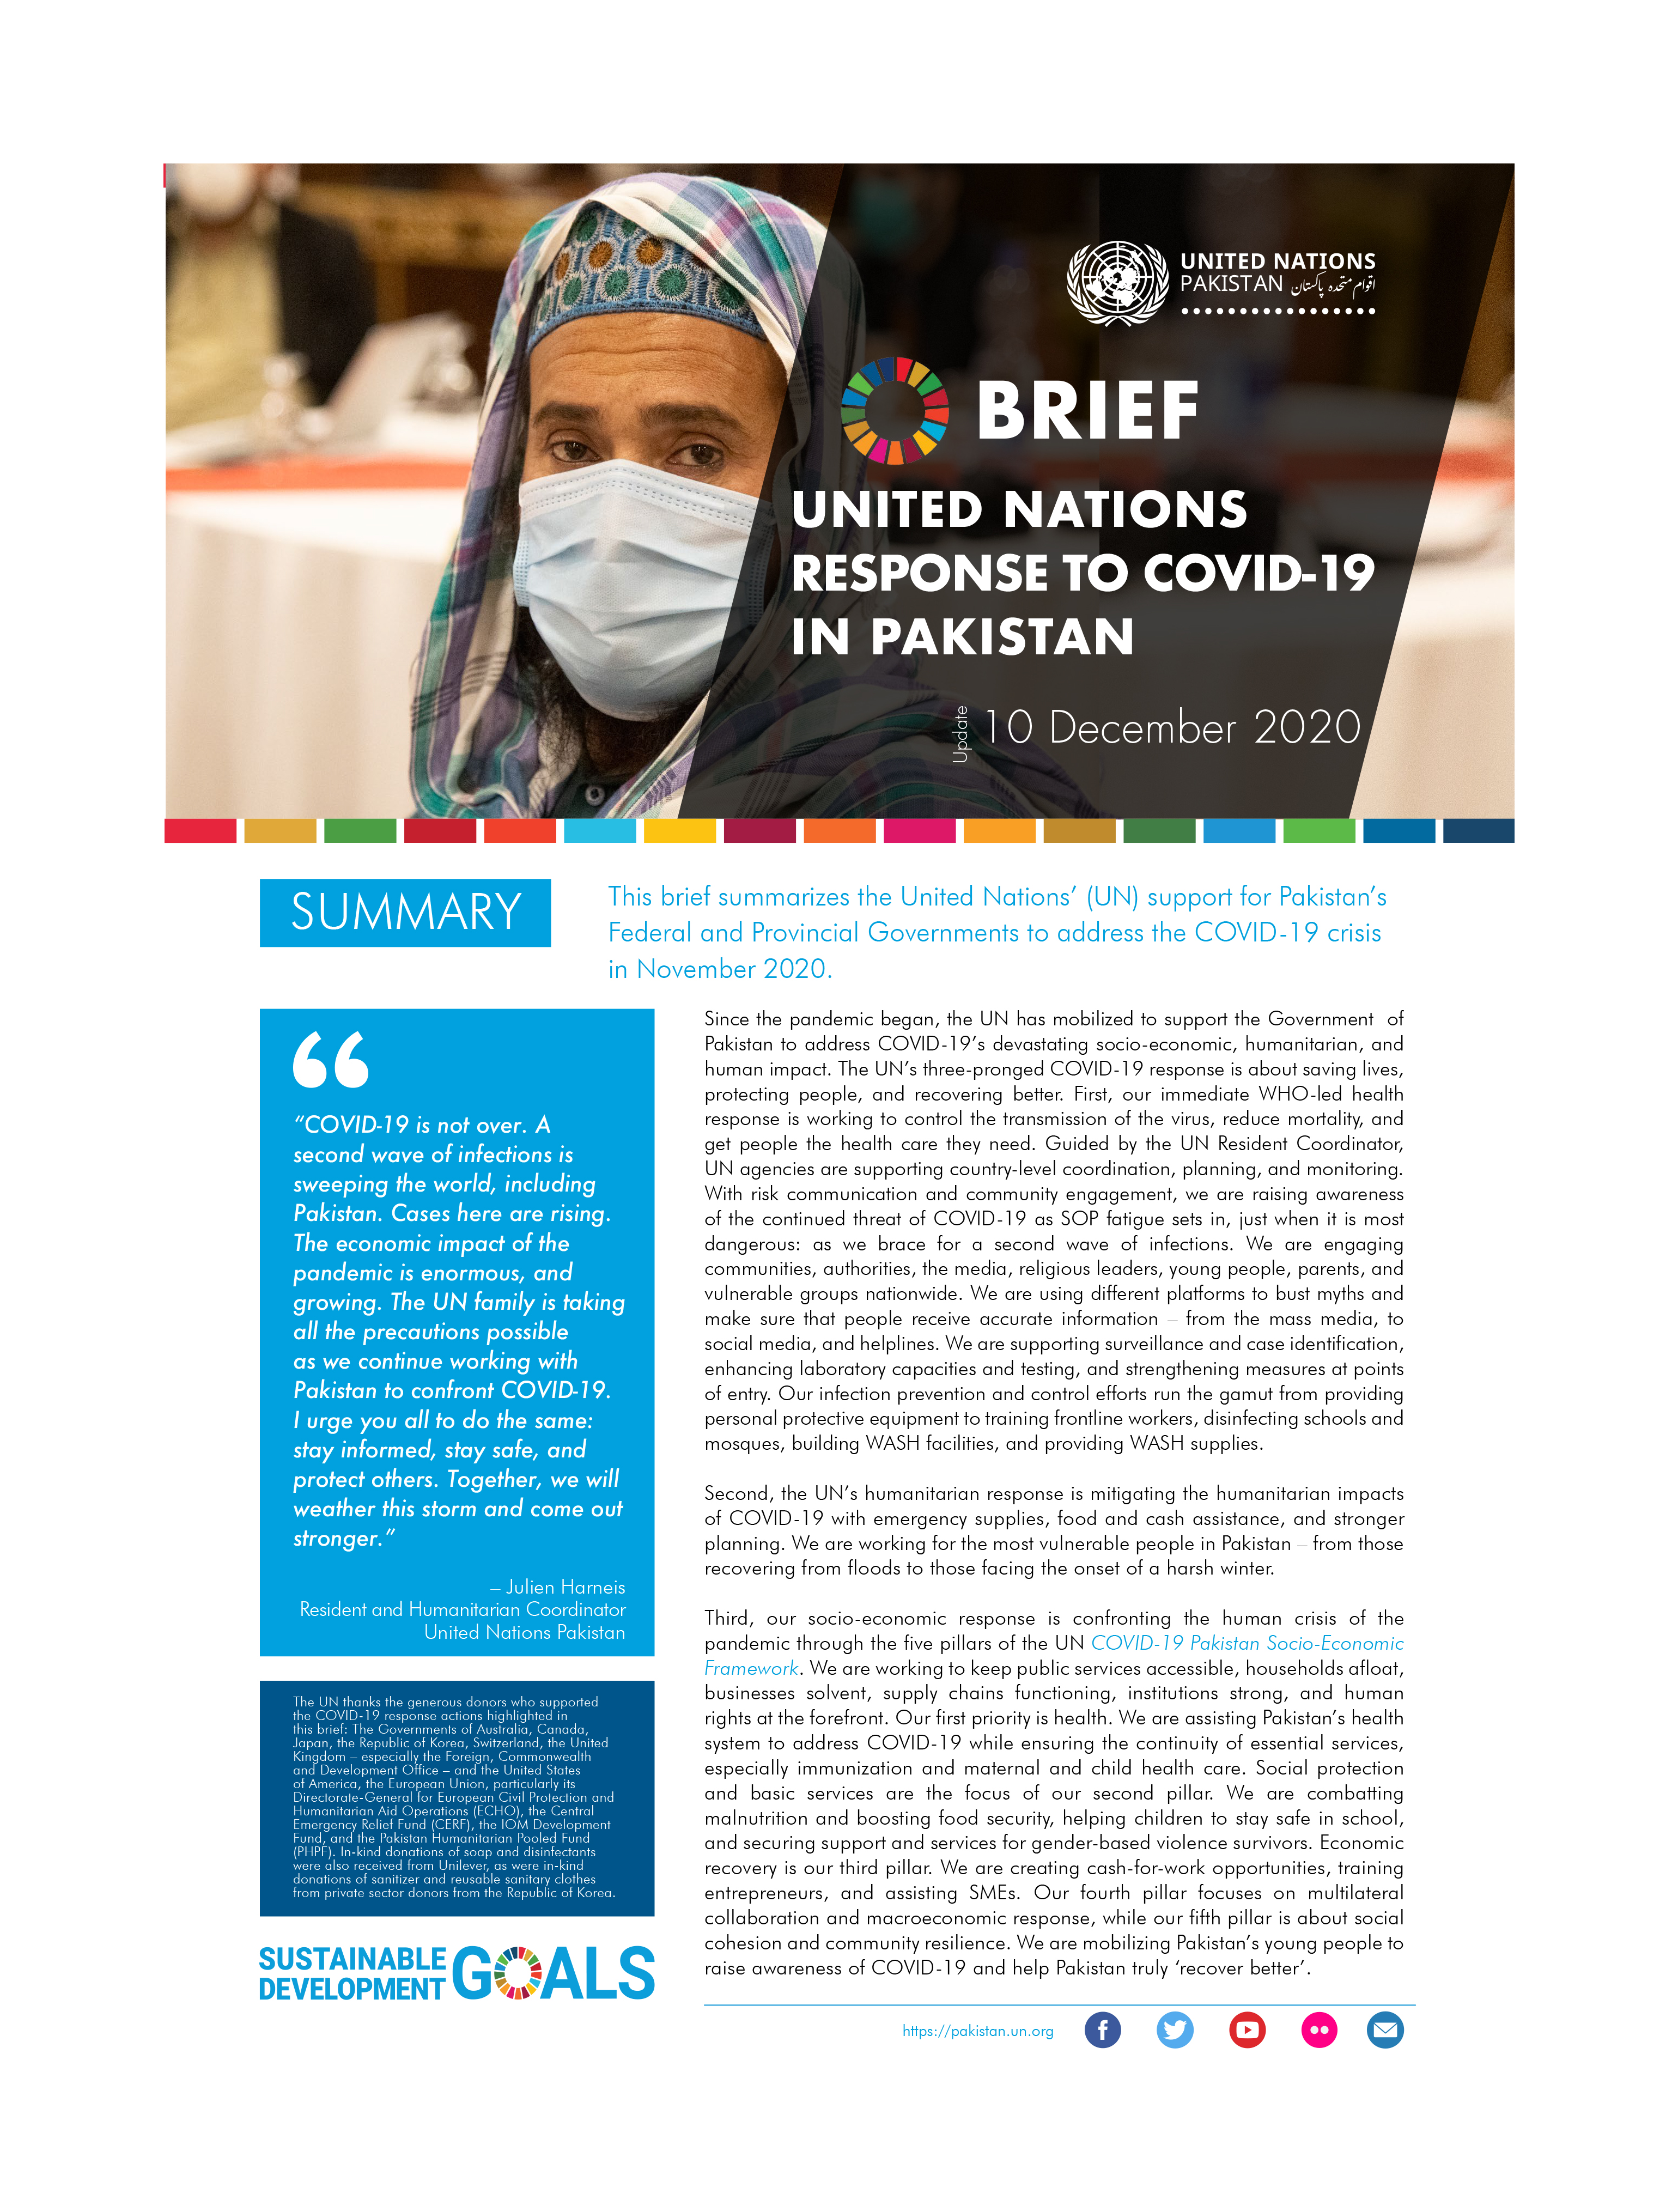 Brief: United Nations response to Covid-19 in Pakistan, December 2020